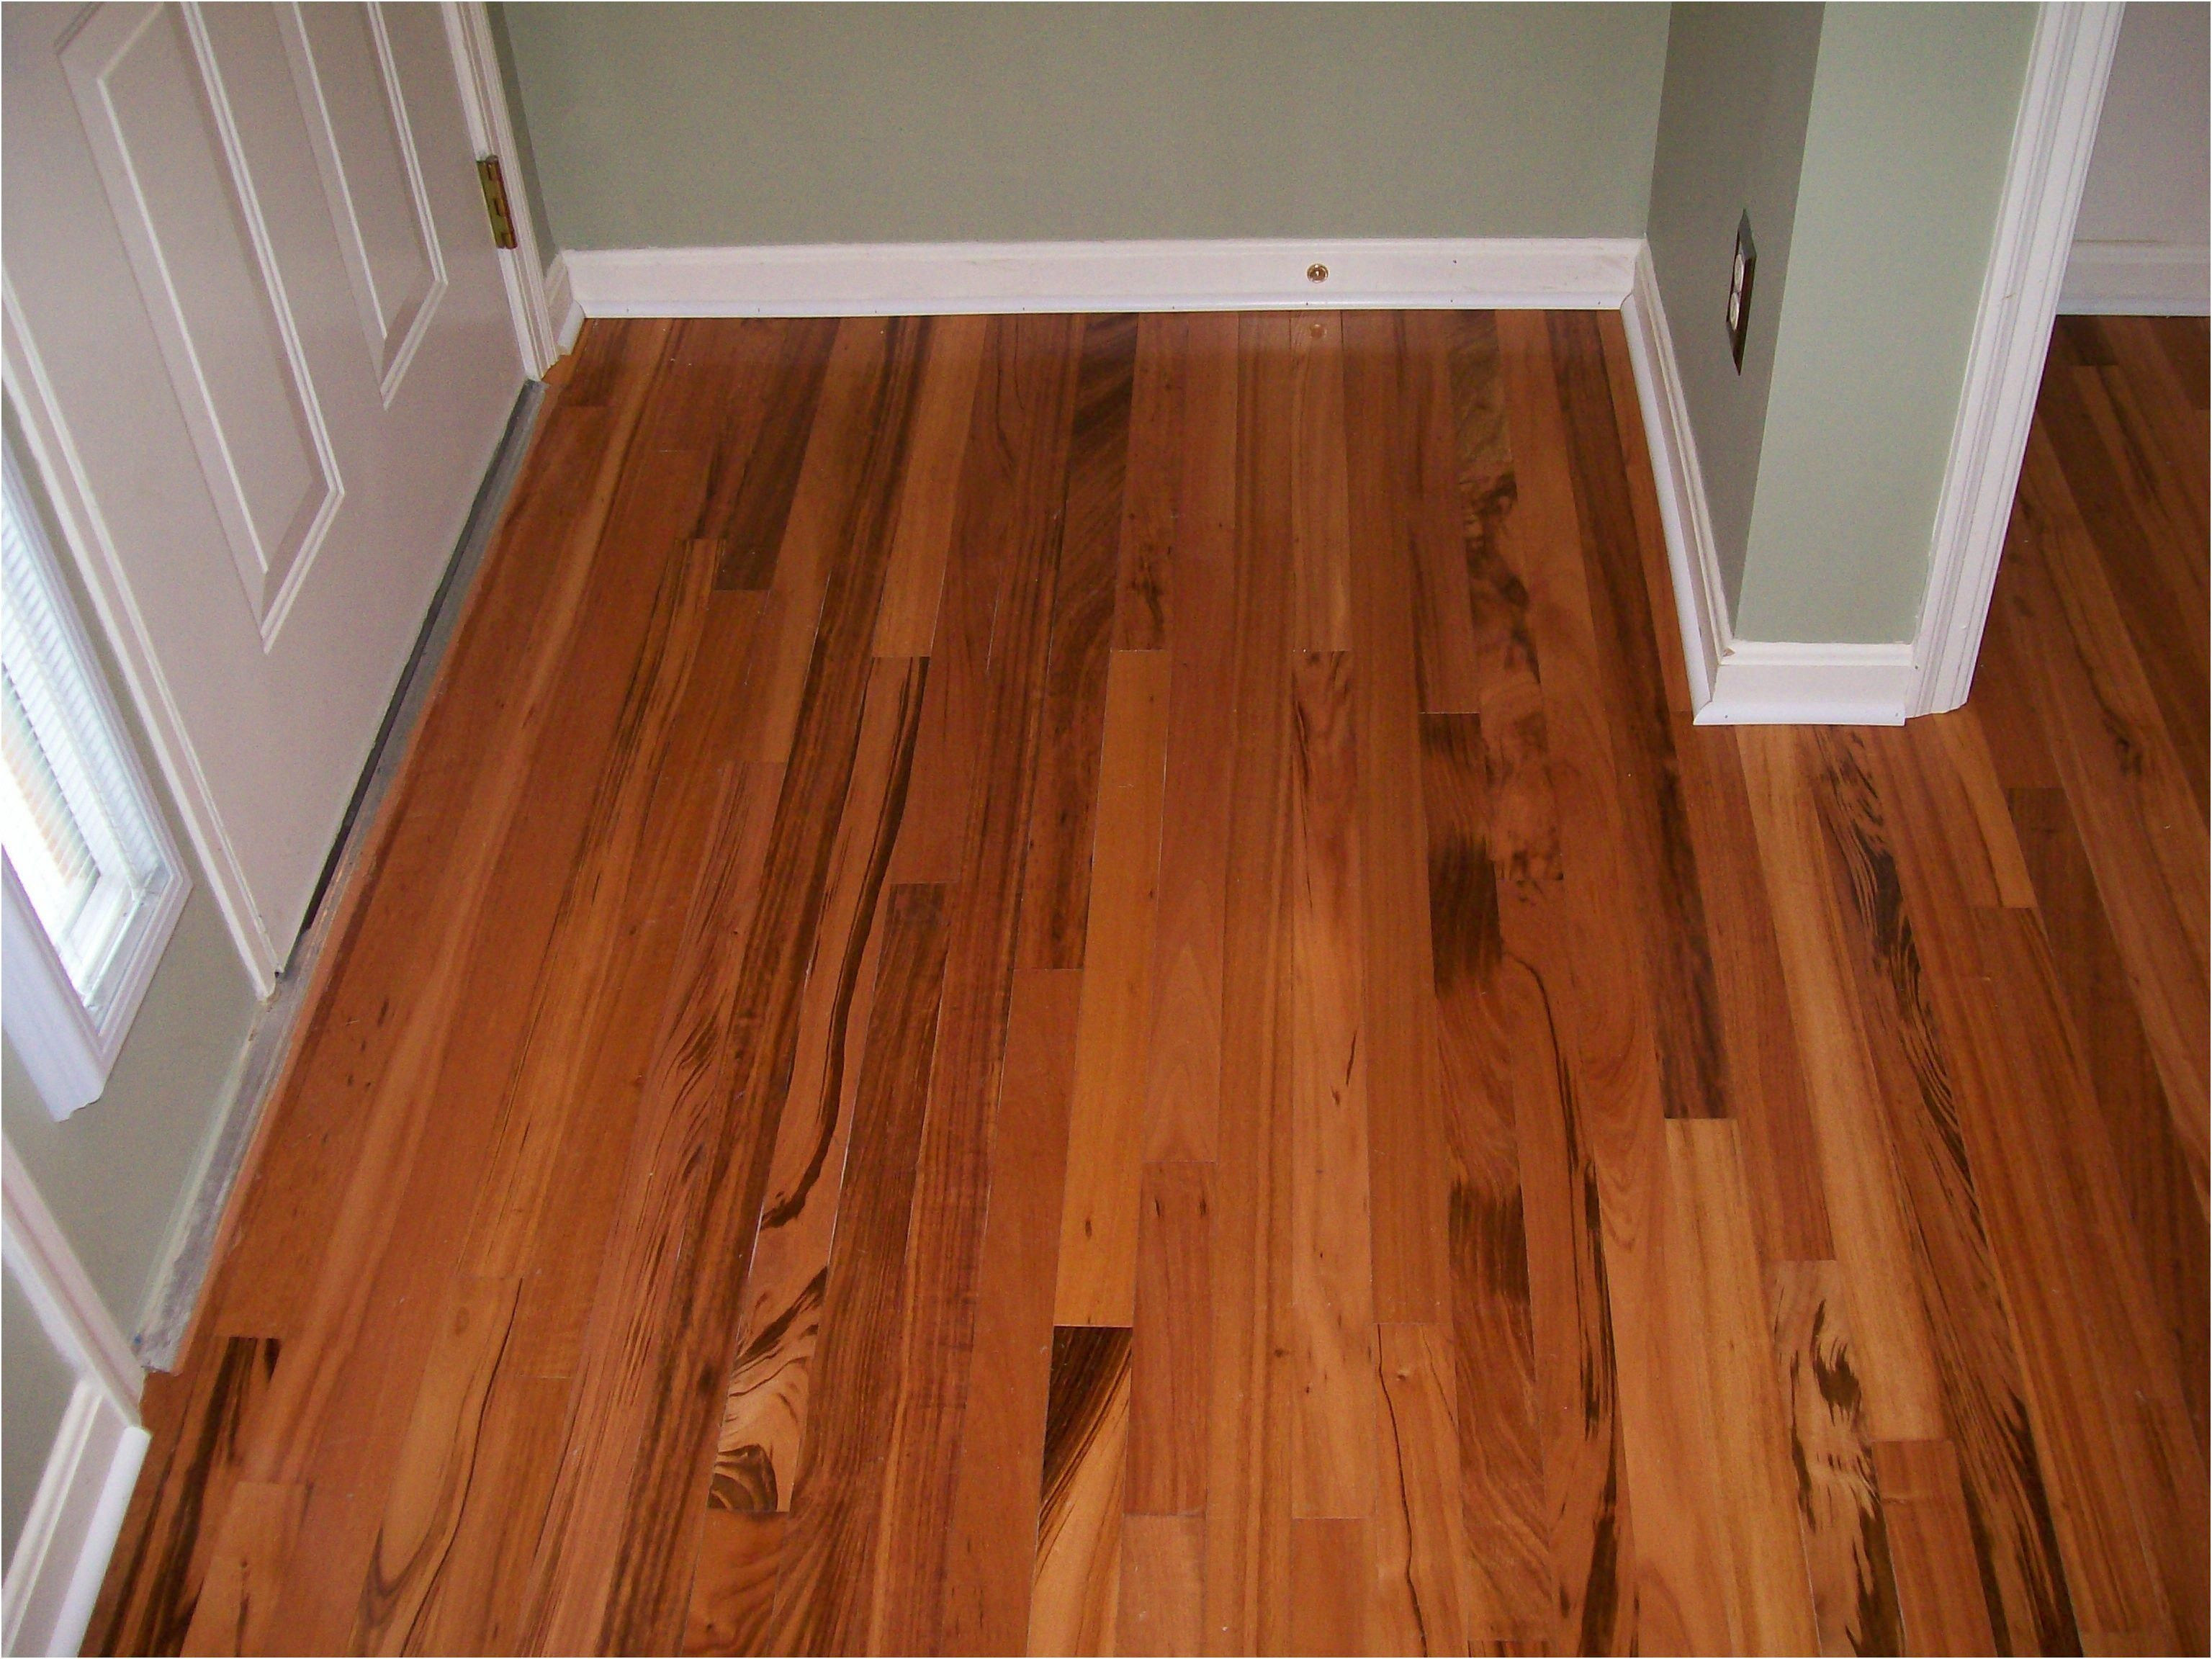 Pin on Flooring Concepts